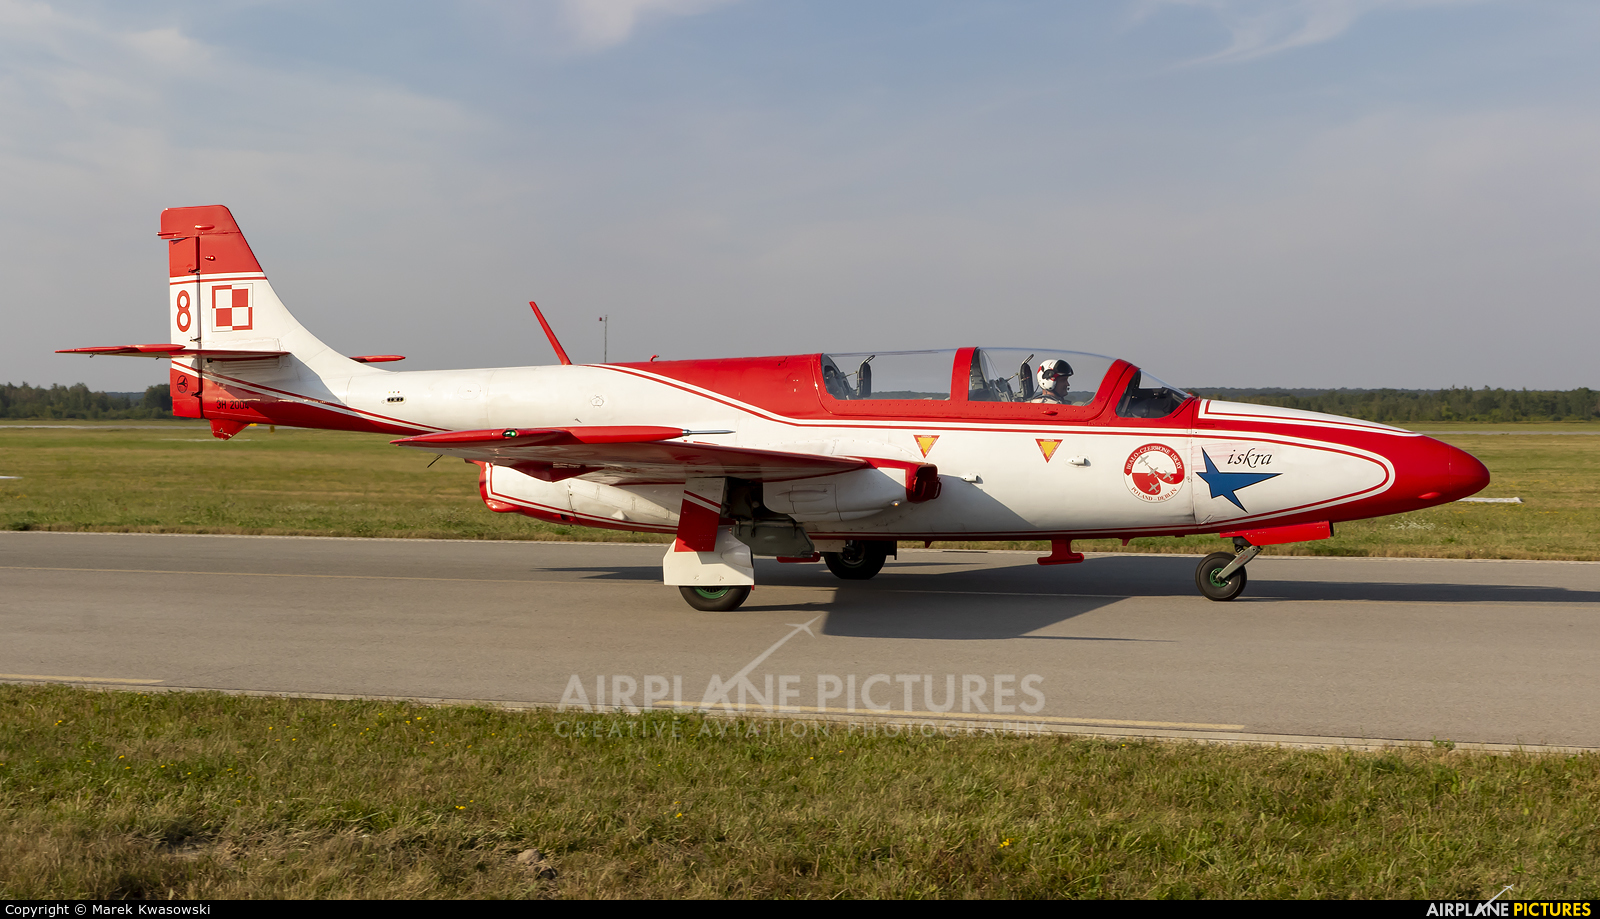 Poland - Air Force: White & Red Iskras 8 aircraft at Dęblin - Museum of Polish Air Force